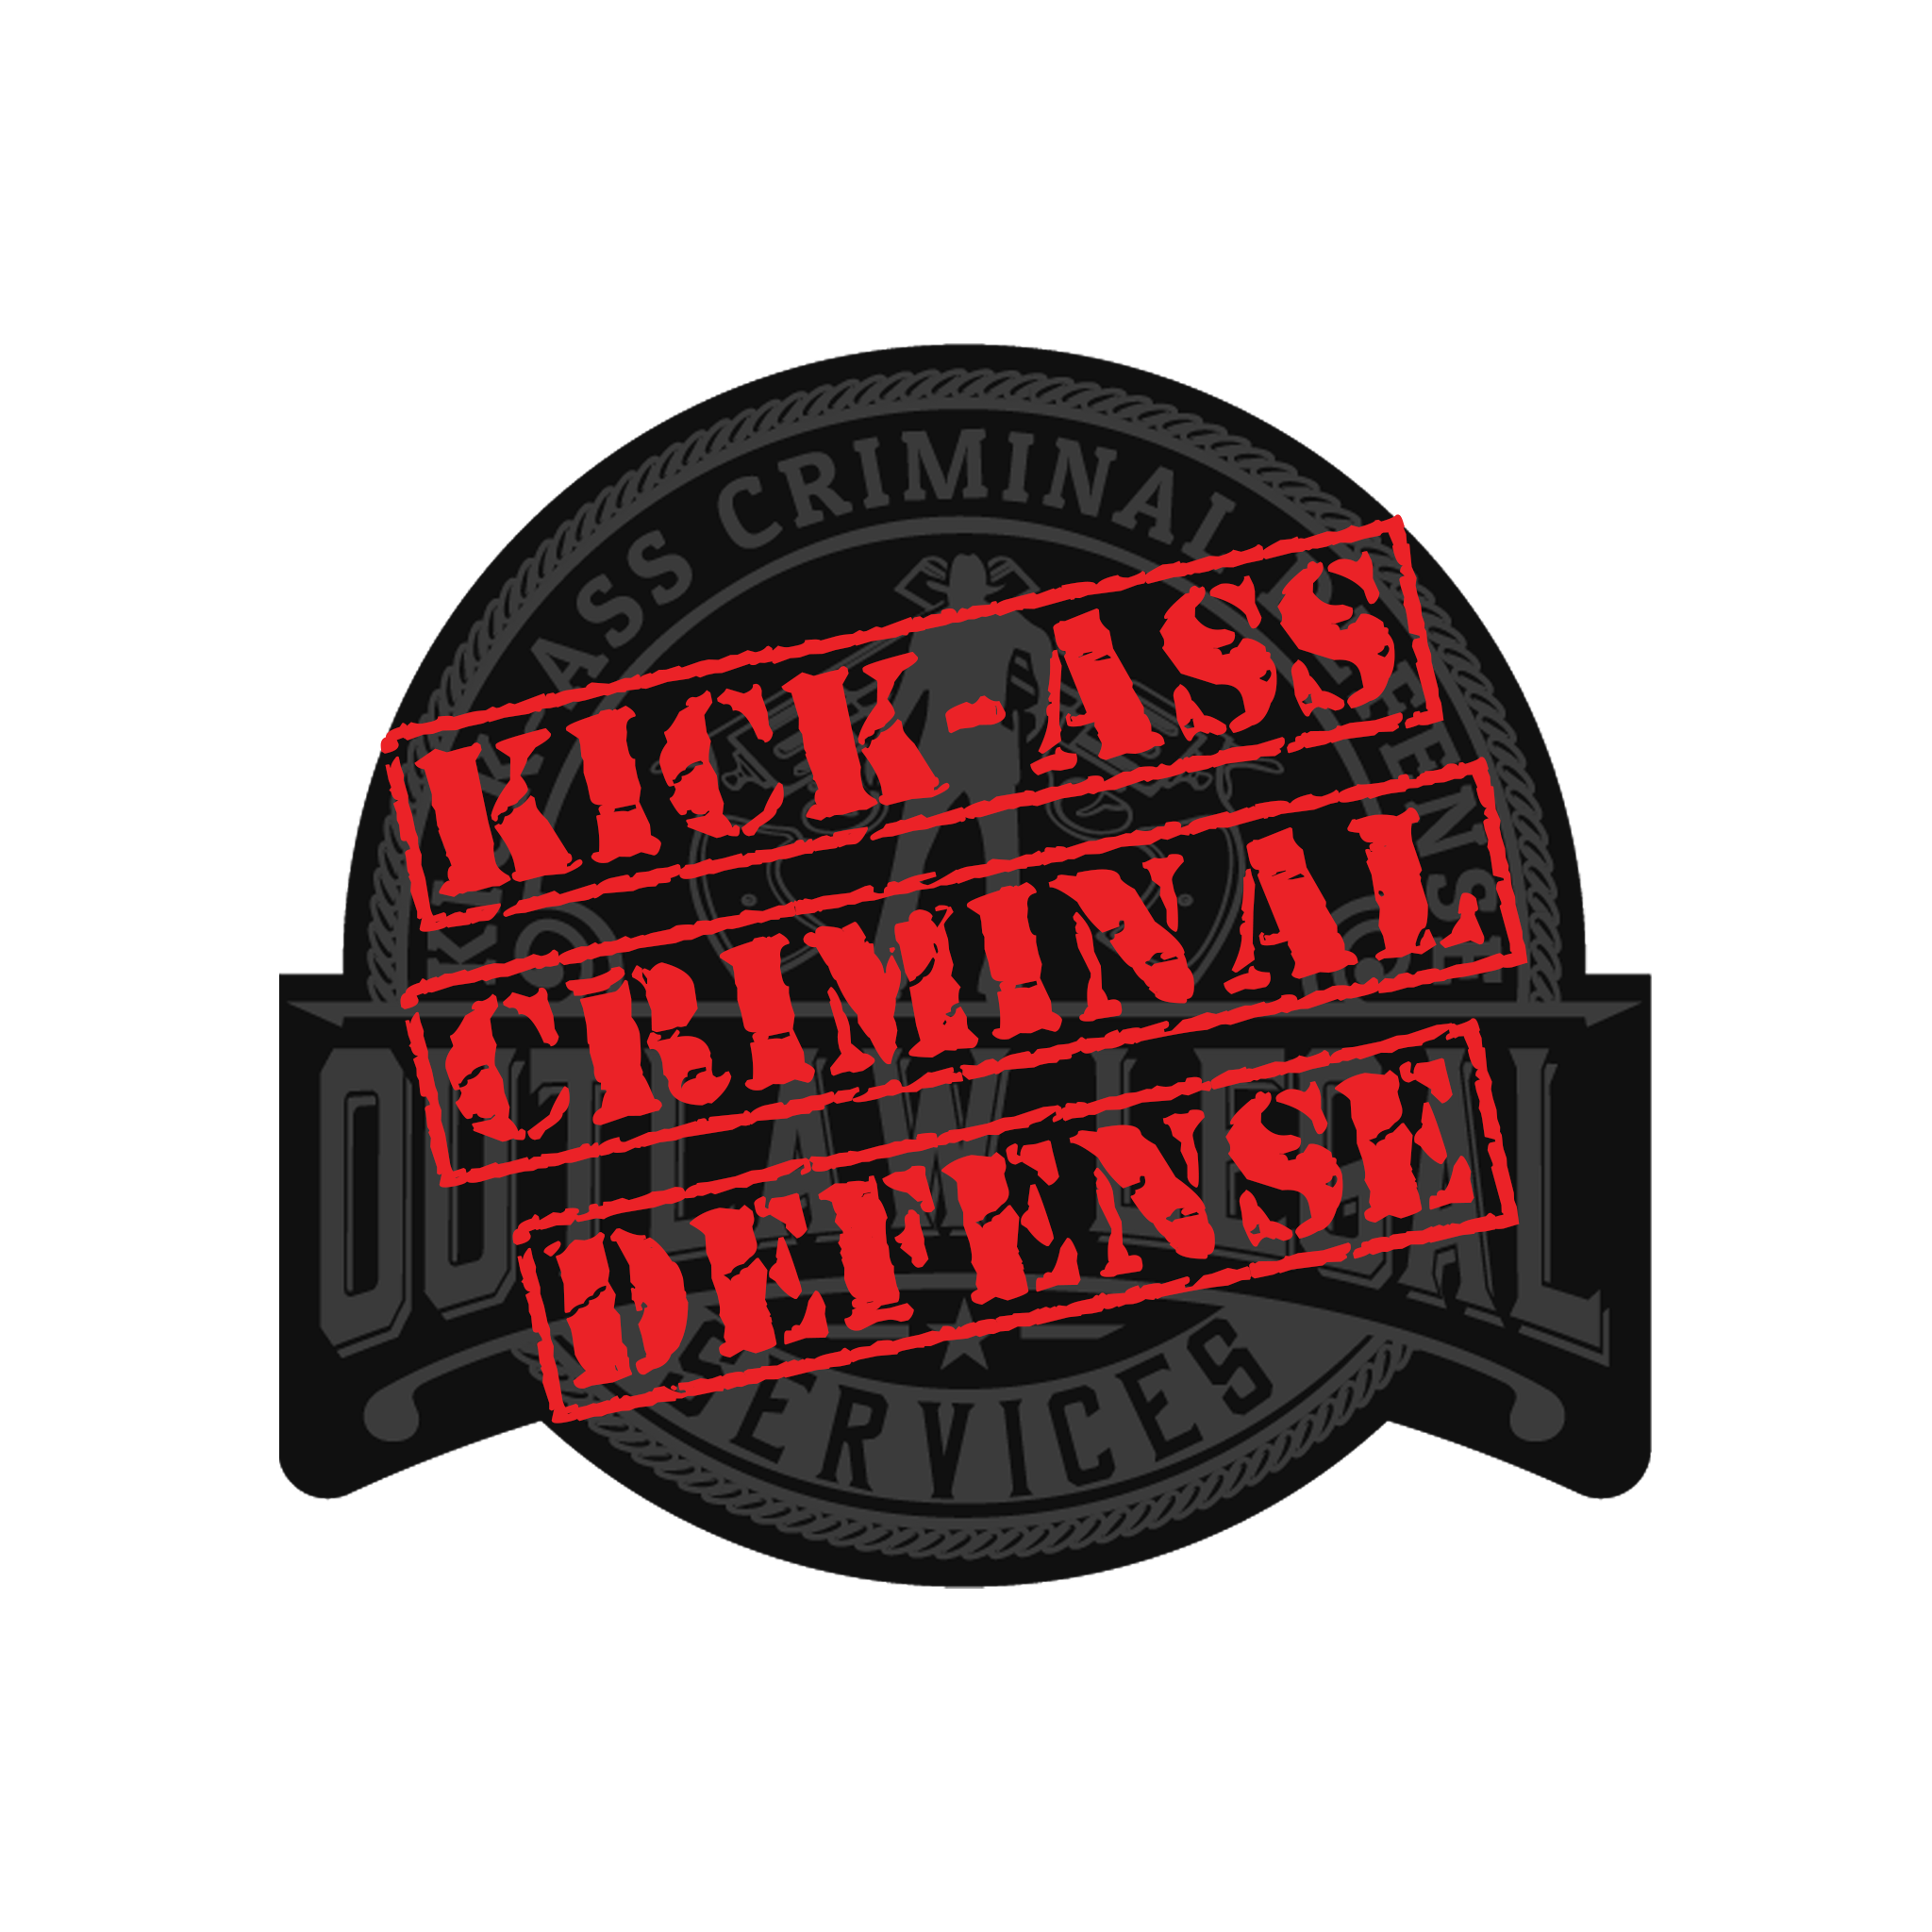 Utah Criminal Defense court proceedings. Utah's best criminal defense. Outlaw Legal Services. Serving Utah, Salt Lake City, Provo, Ogden, Logan, Vernal, St. George, West Valley City, Sandy. Utah Lawyer. Utah Attorney.